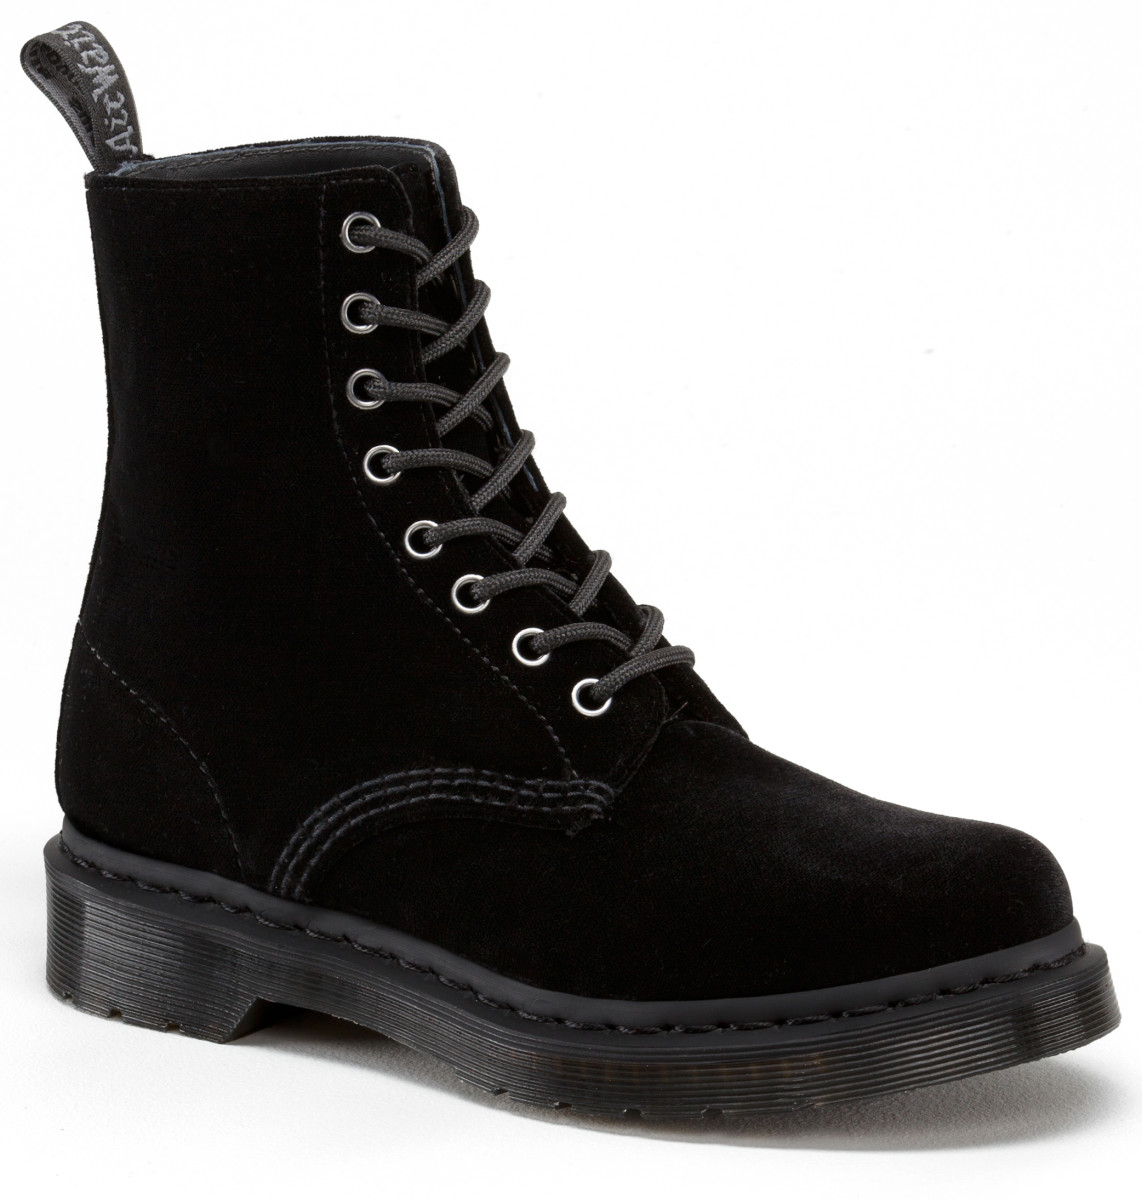 best online great fit super quality The Velvet Boots Karina Hopes to Wear All Season Long ...